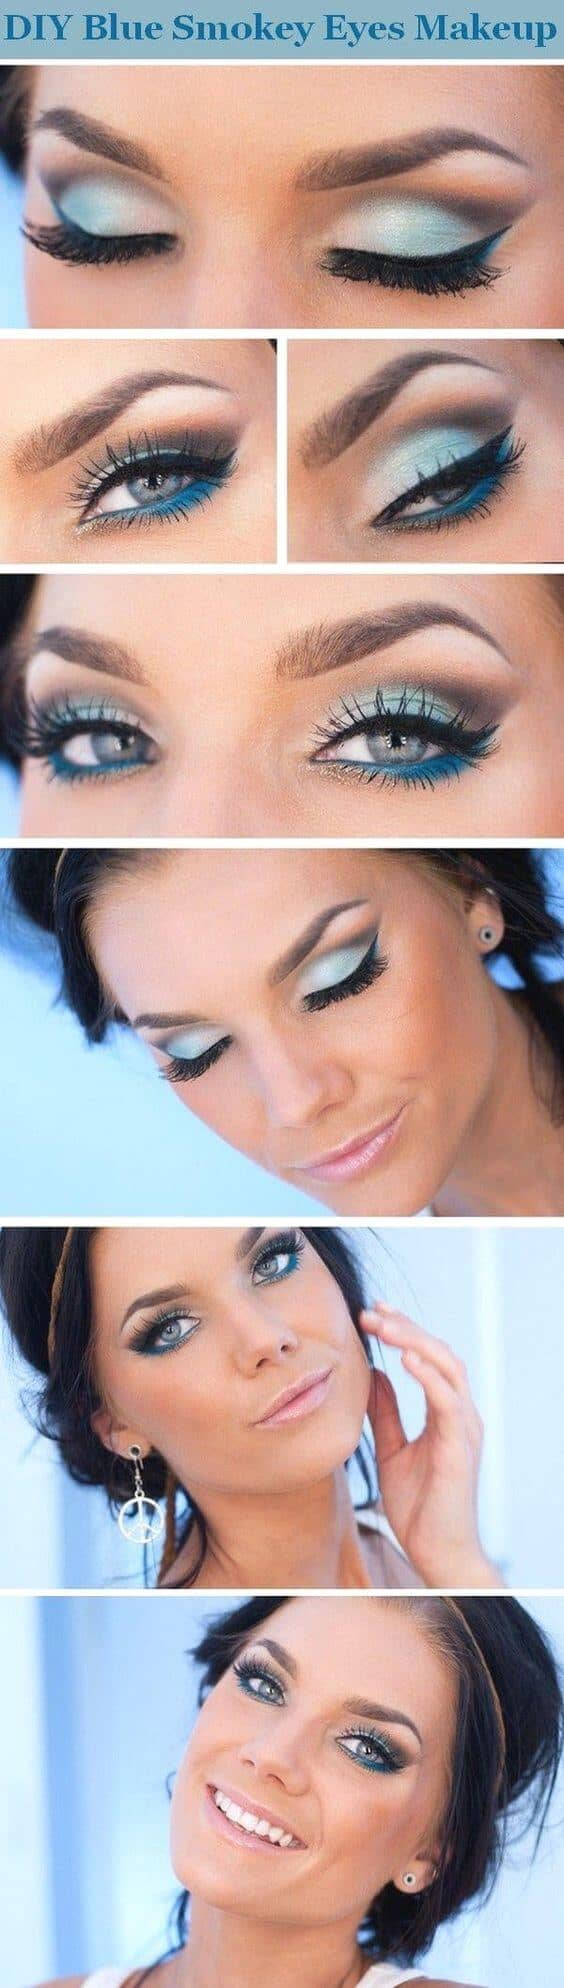 Princess Jasmine-Inspired Smoky Blue Makeup